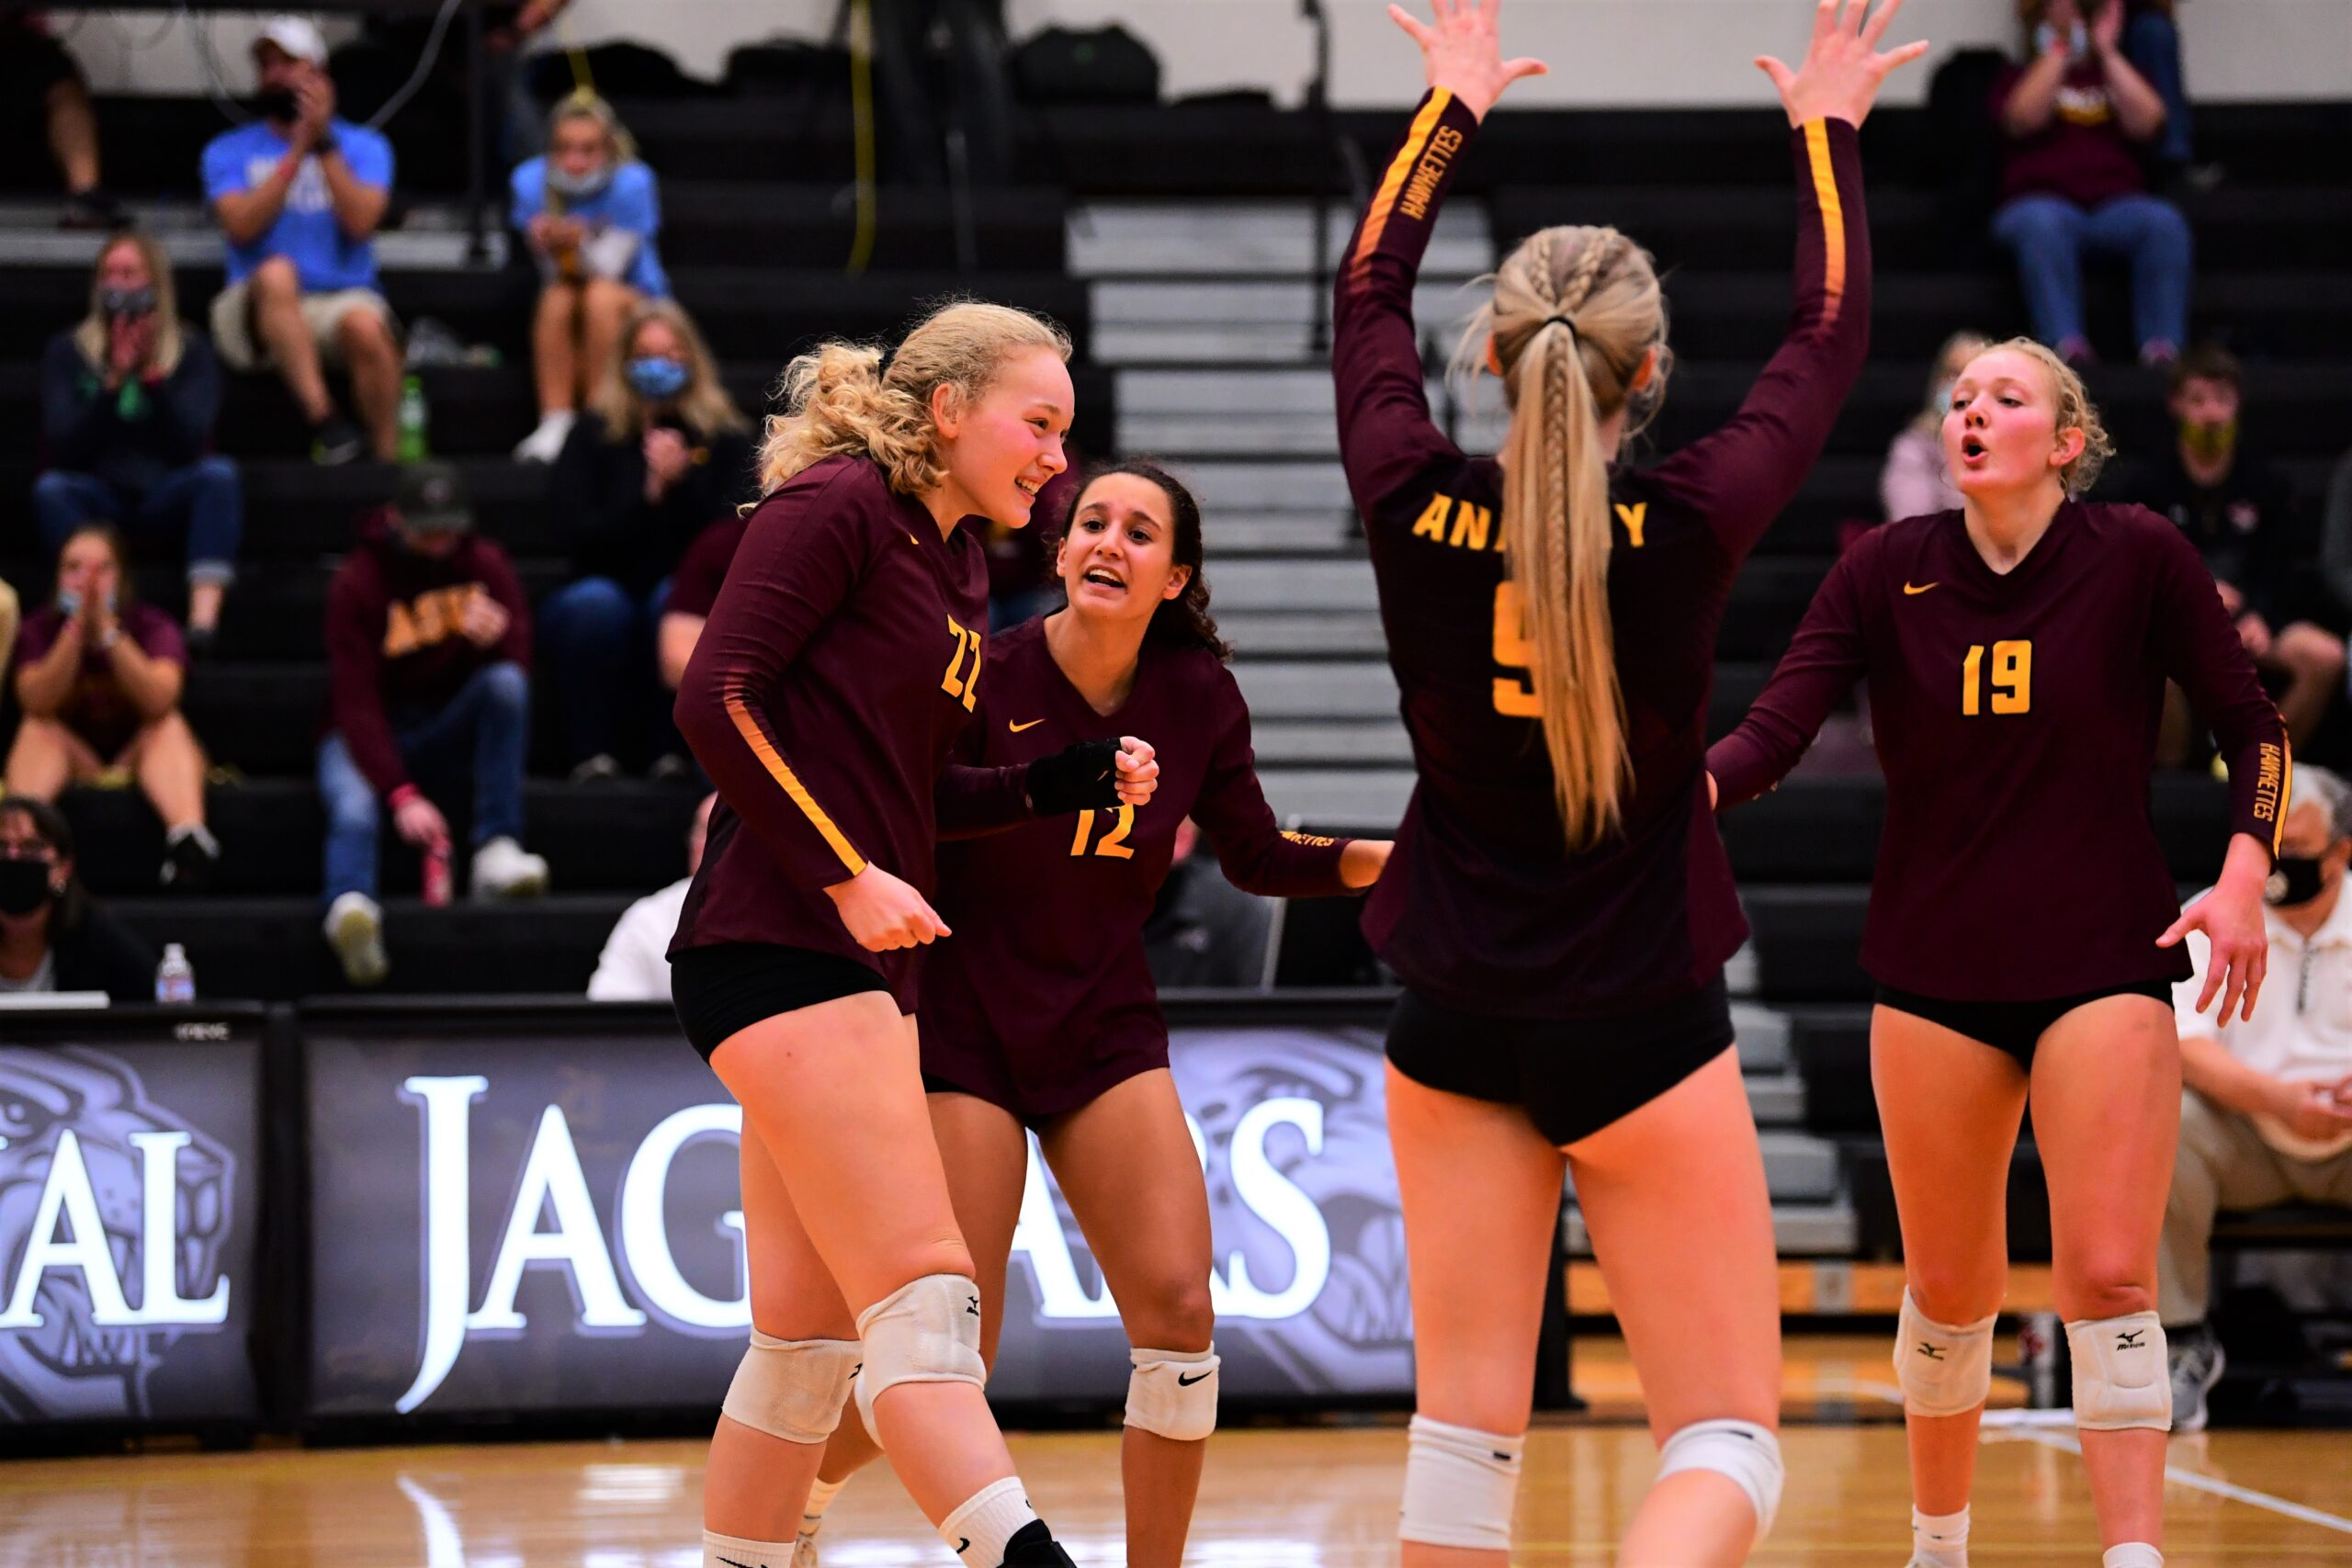 'They have a lot of weapons': Hawkettes top rival, will likely become No. 1 team